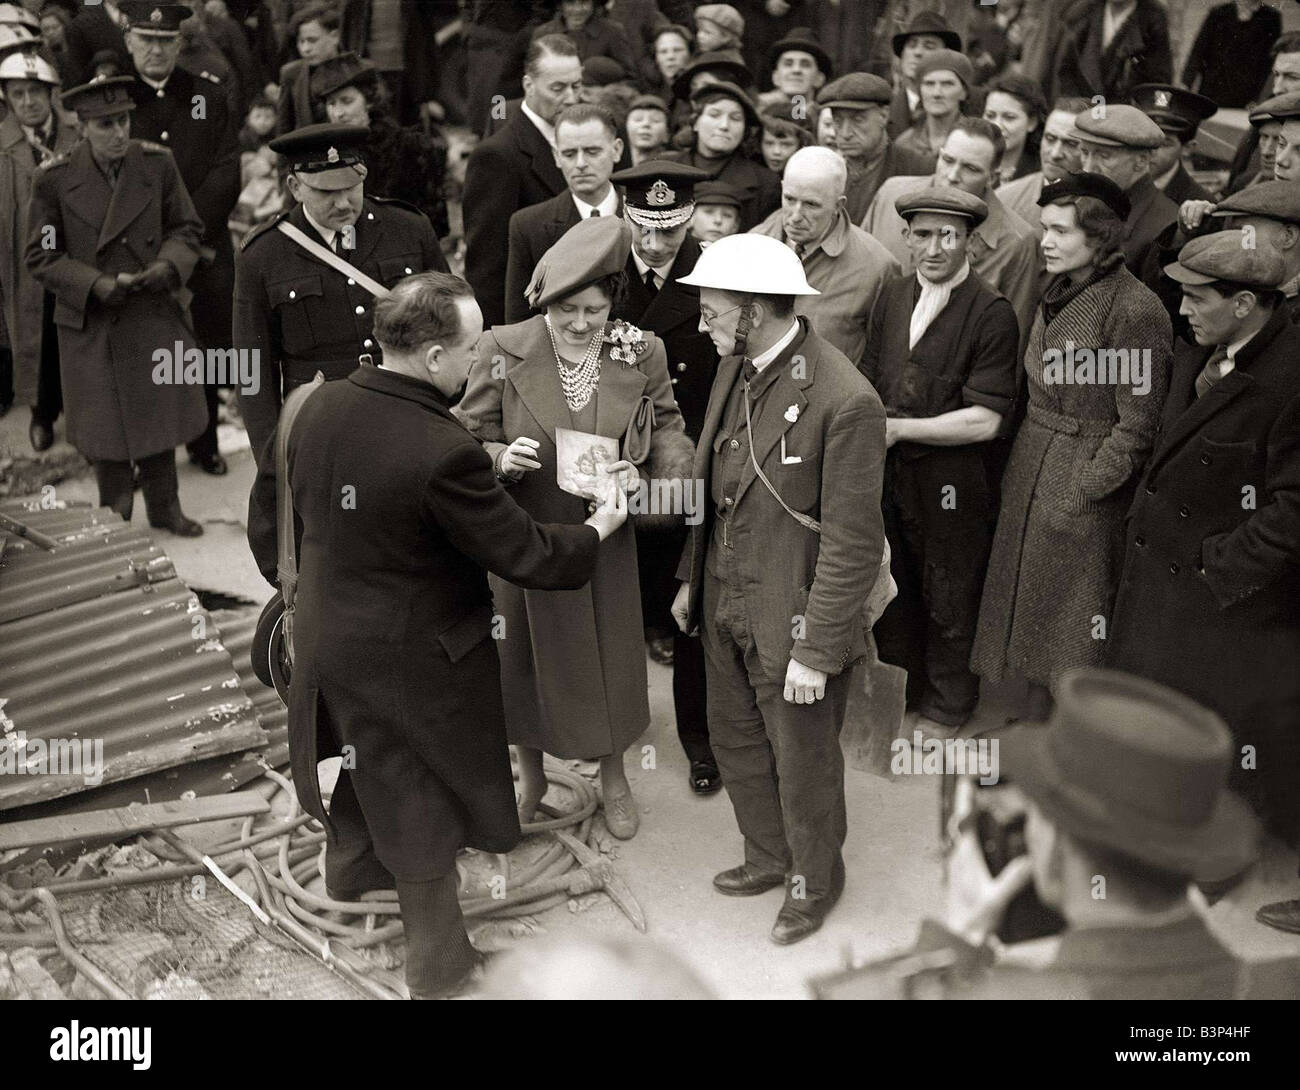 King George VI and Queen Elizabeth visit the East End London during WW2 1939 1945 A serviceman shows a picture of - Stock Image